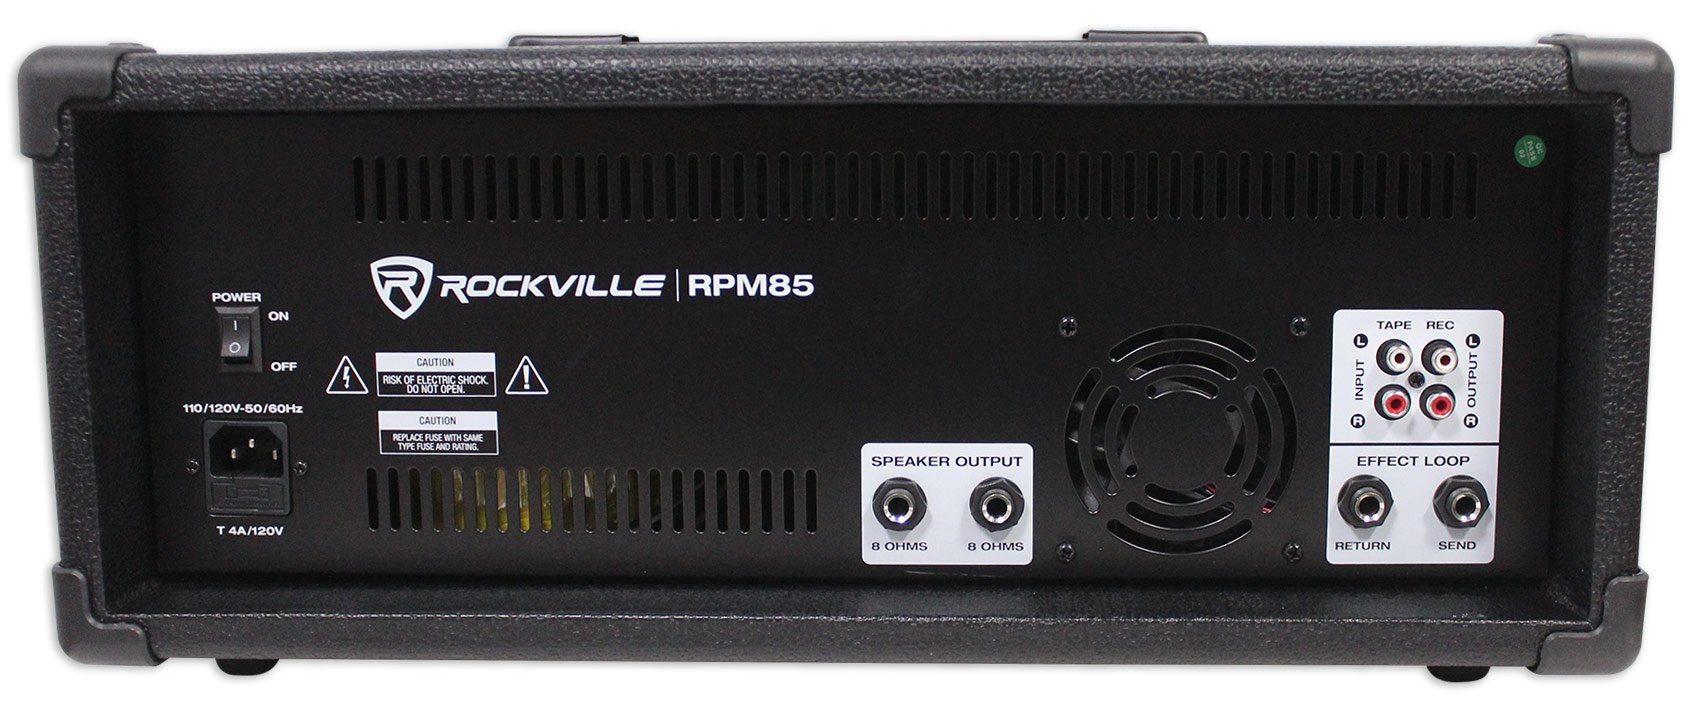 Class D Professional Power Amplifier : peavey ipr2 5000 class d professional power amplifier 5 050w amp powered mixer guitar affinity ~ Russianpoet.info Haus und Dekorationen